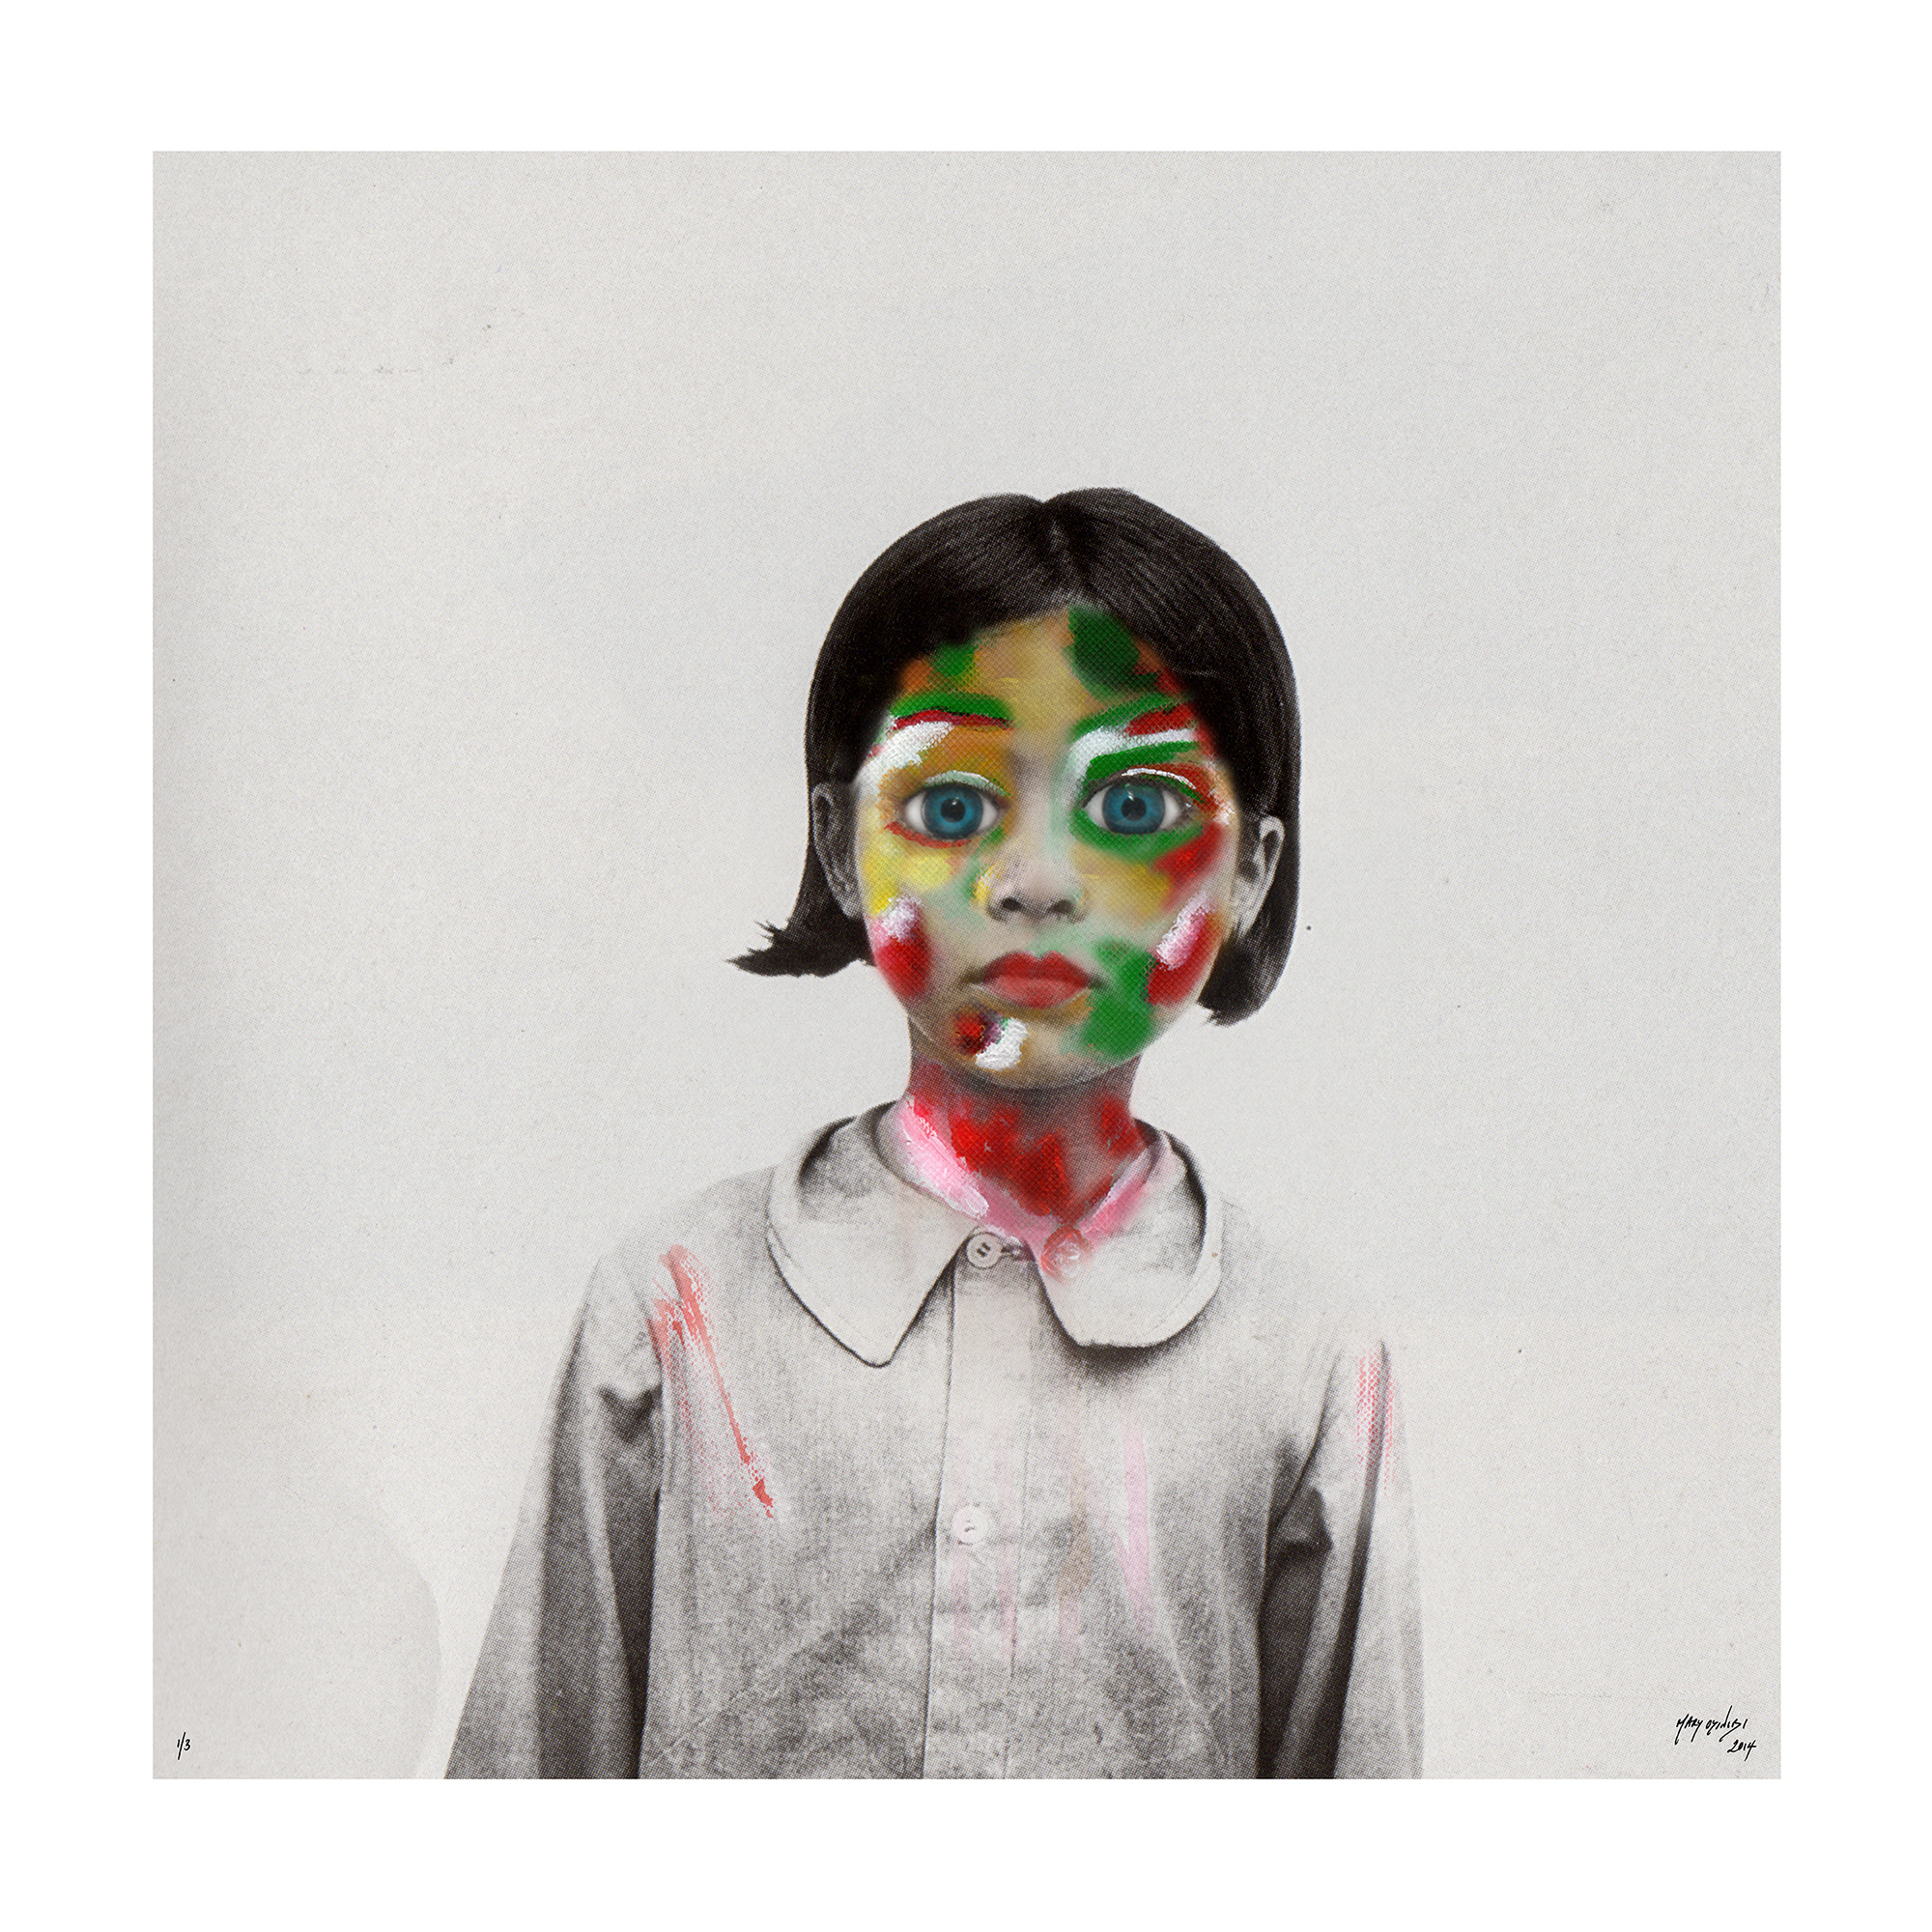 HUMAN SUFFERING AT TIMES OF CRISES Project    Little Girl In White   Human Suffering Series - 2014 edium:Acrylic Paint, Digital Art  (762x 762cm)